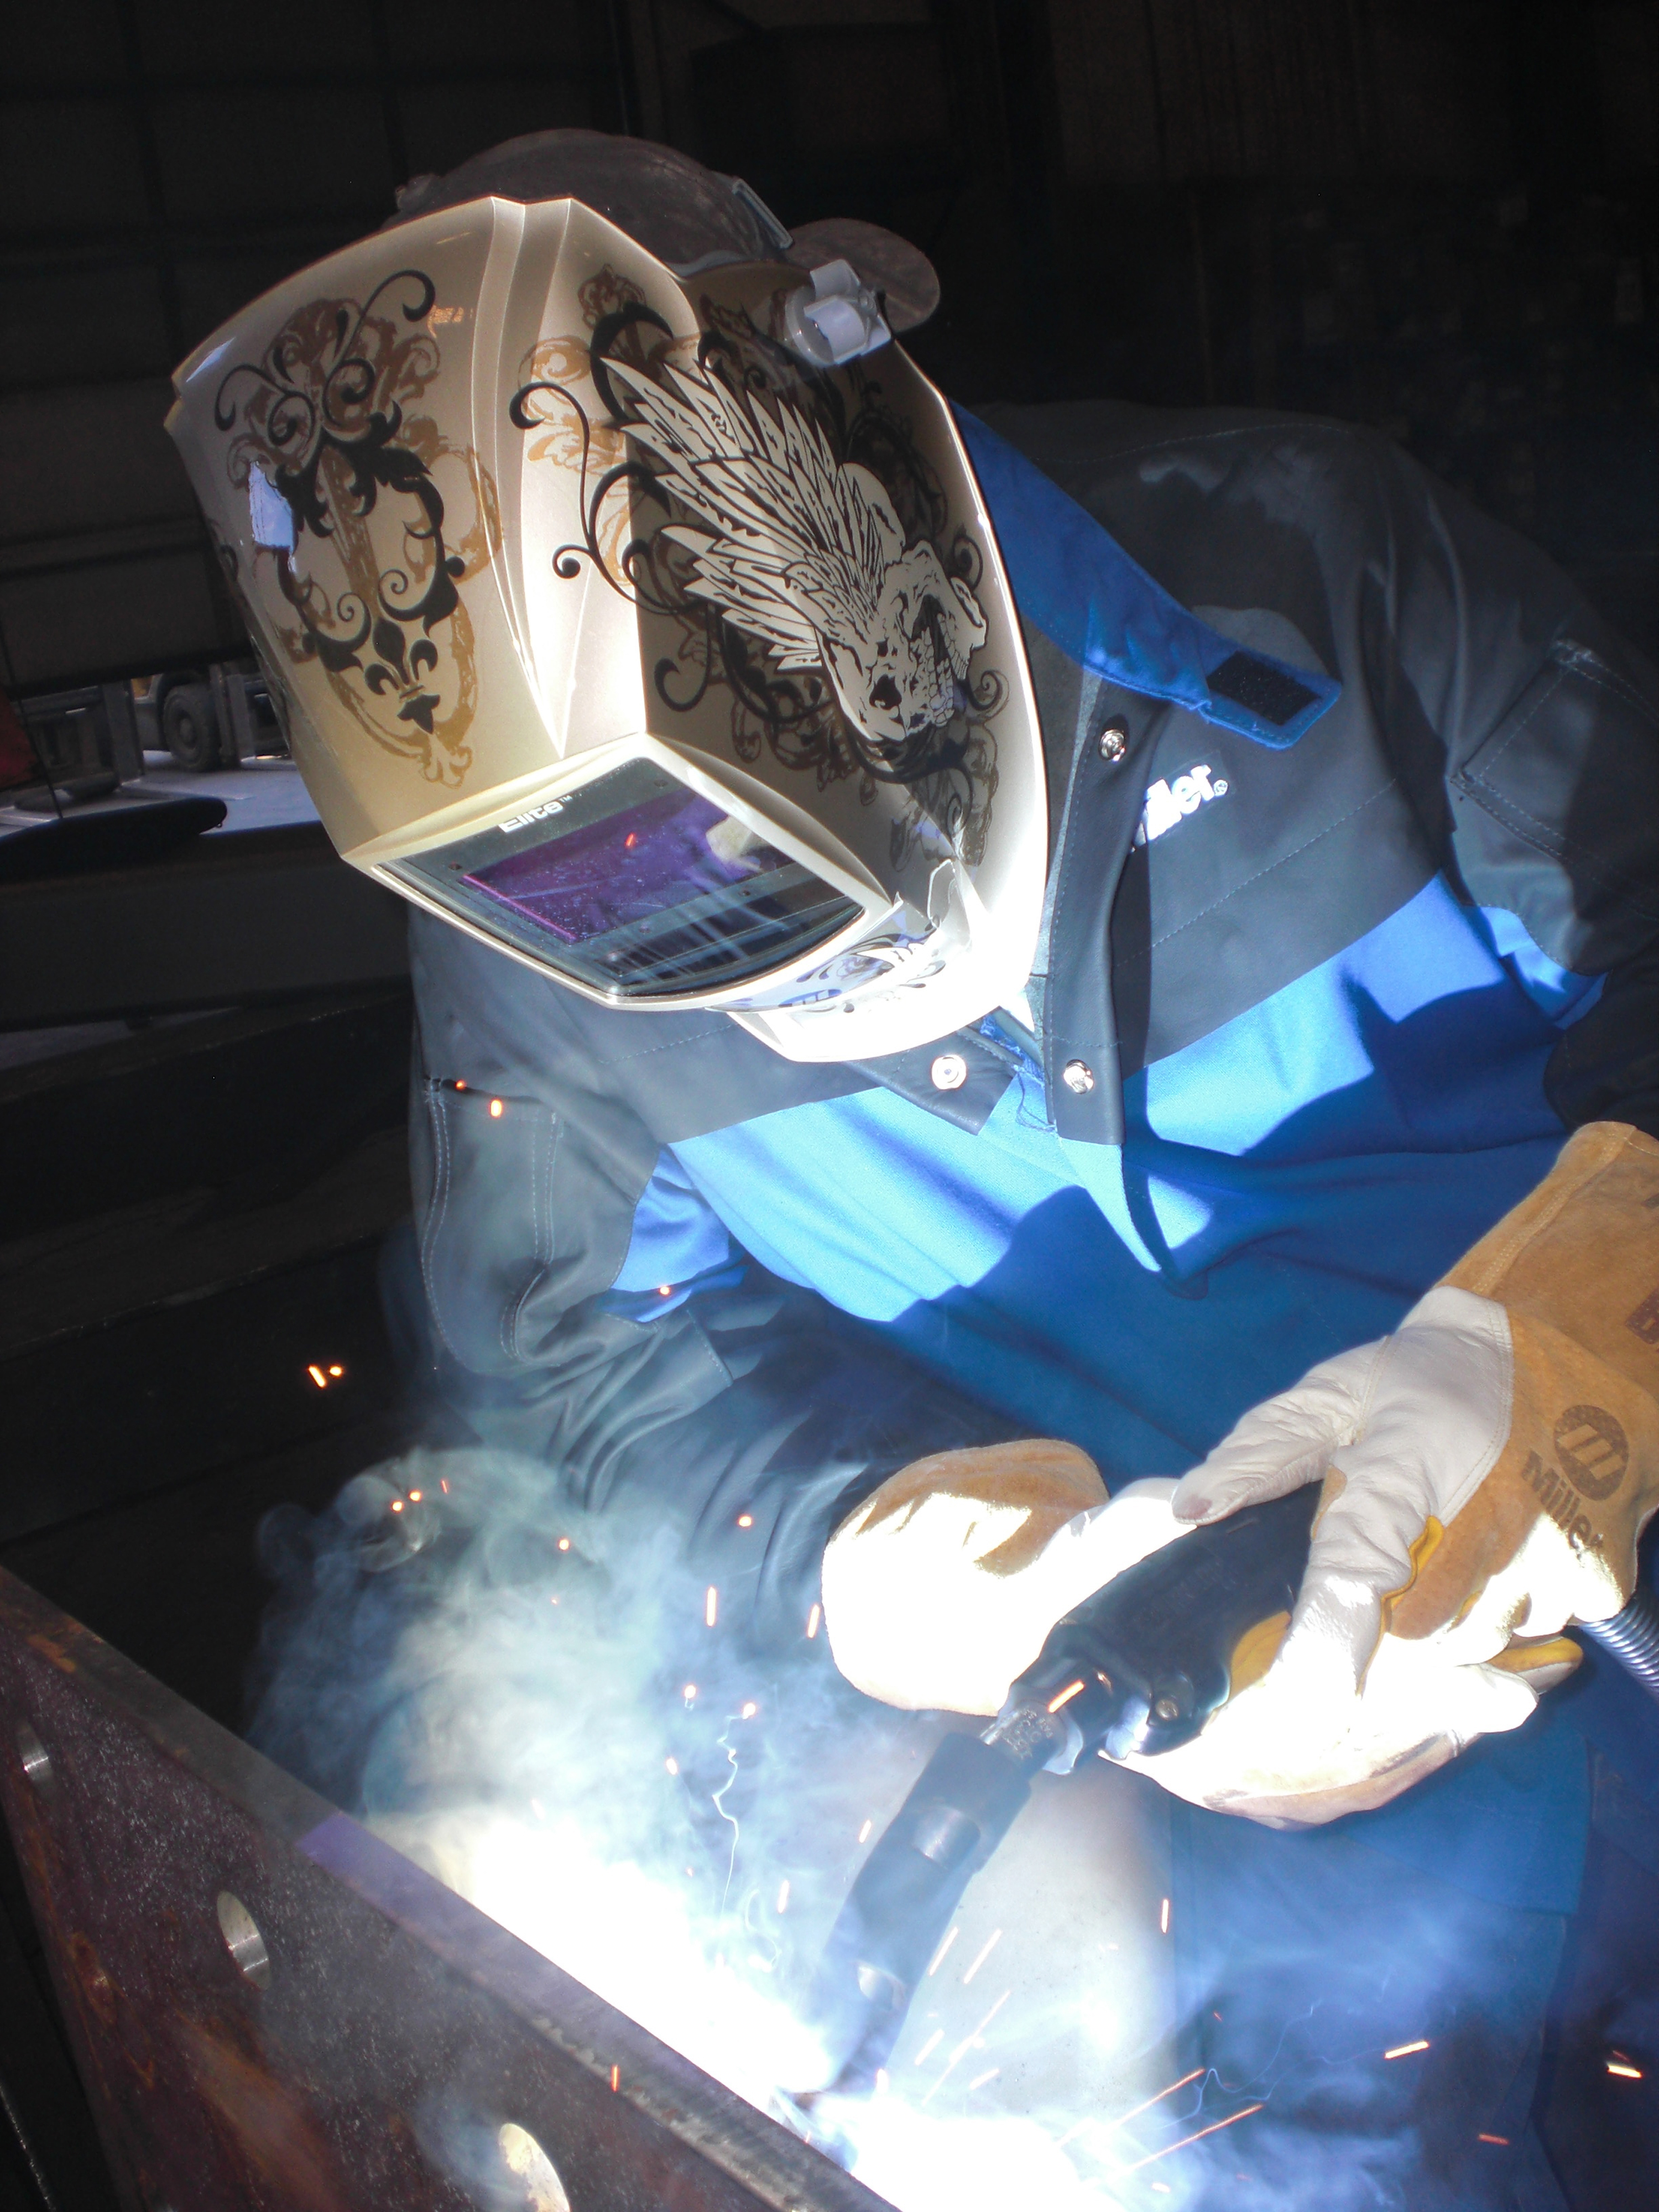 second time around is a charm fabricating and metalworking welding operator brian hubbard uses the 400 amp q gun mig gun centerfire consumables to complete welds on a current structural steel bridge project